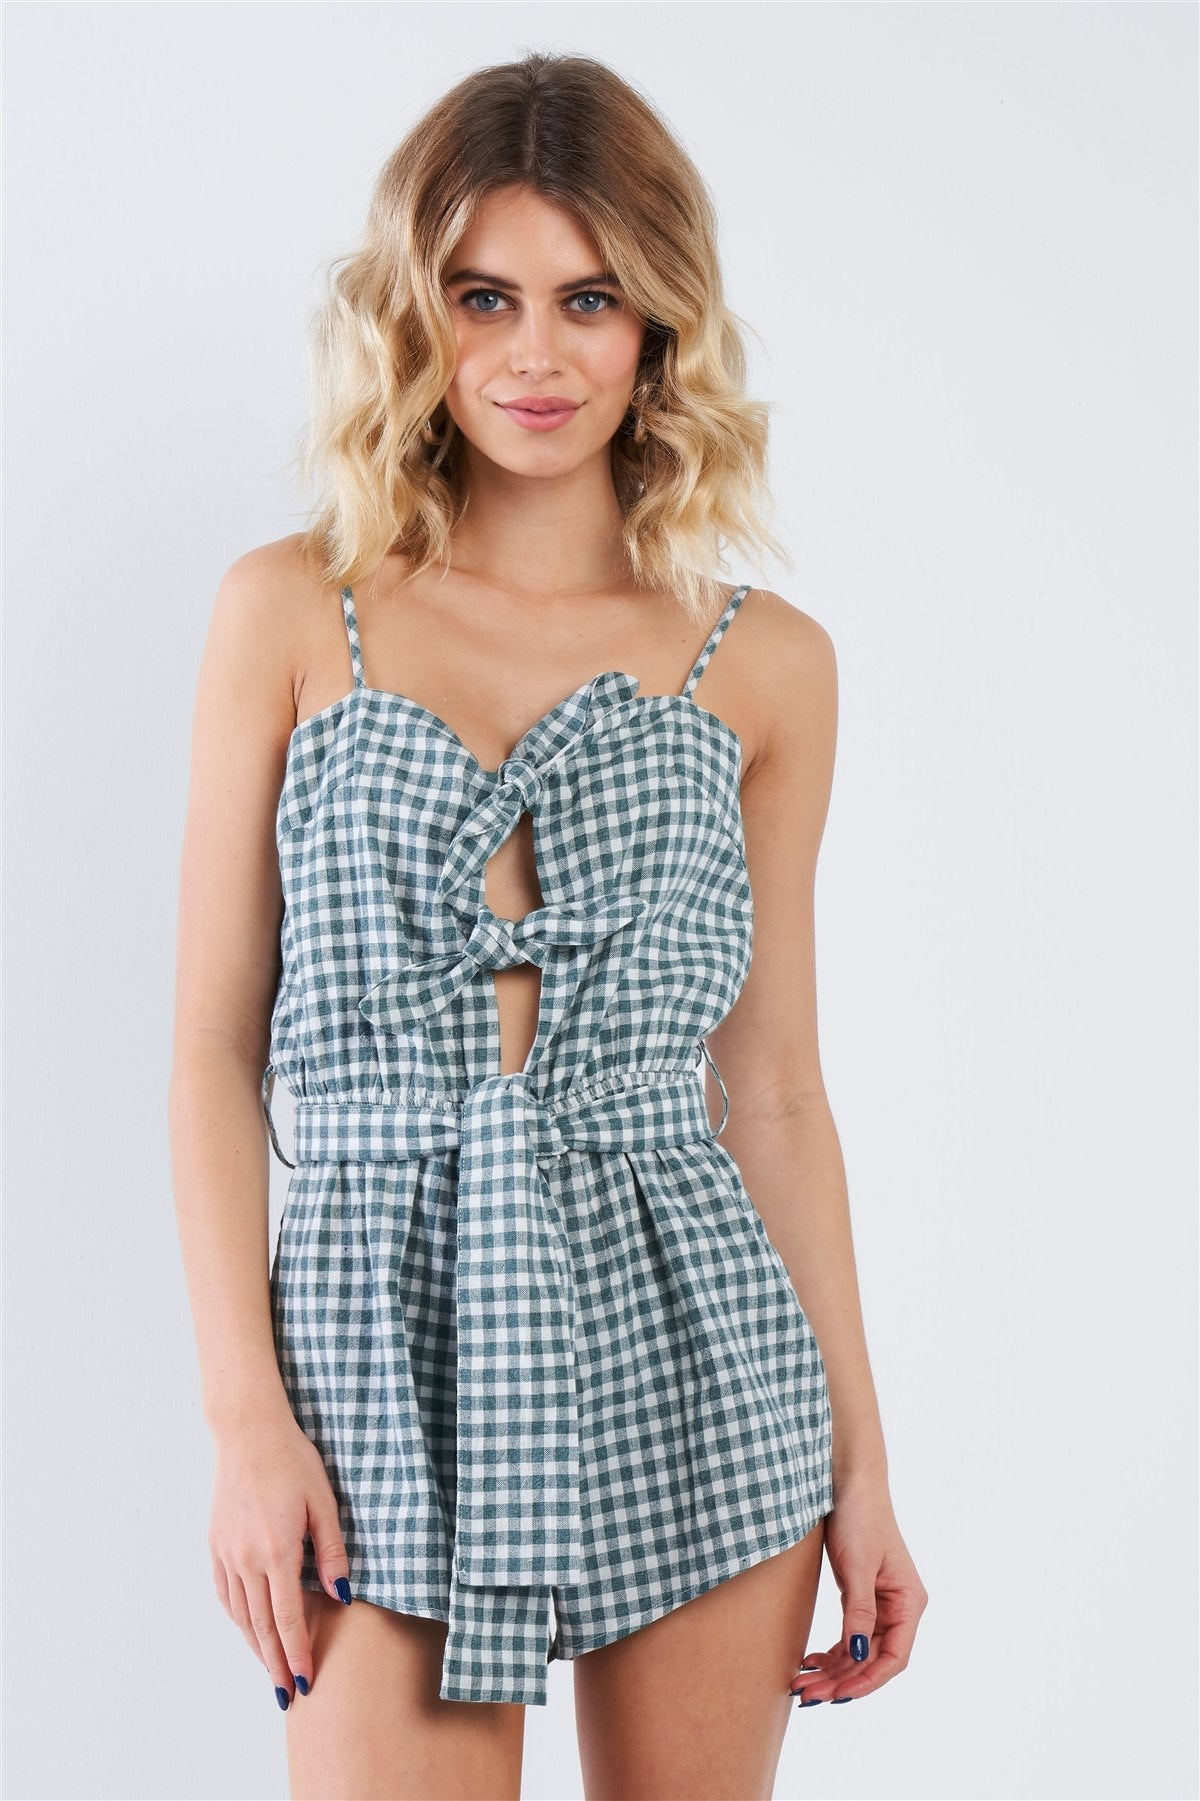 Green Checkered Layered Bow Cut Out Short Romper - Kendalls Deals